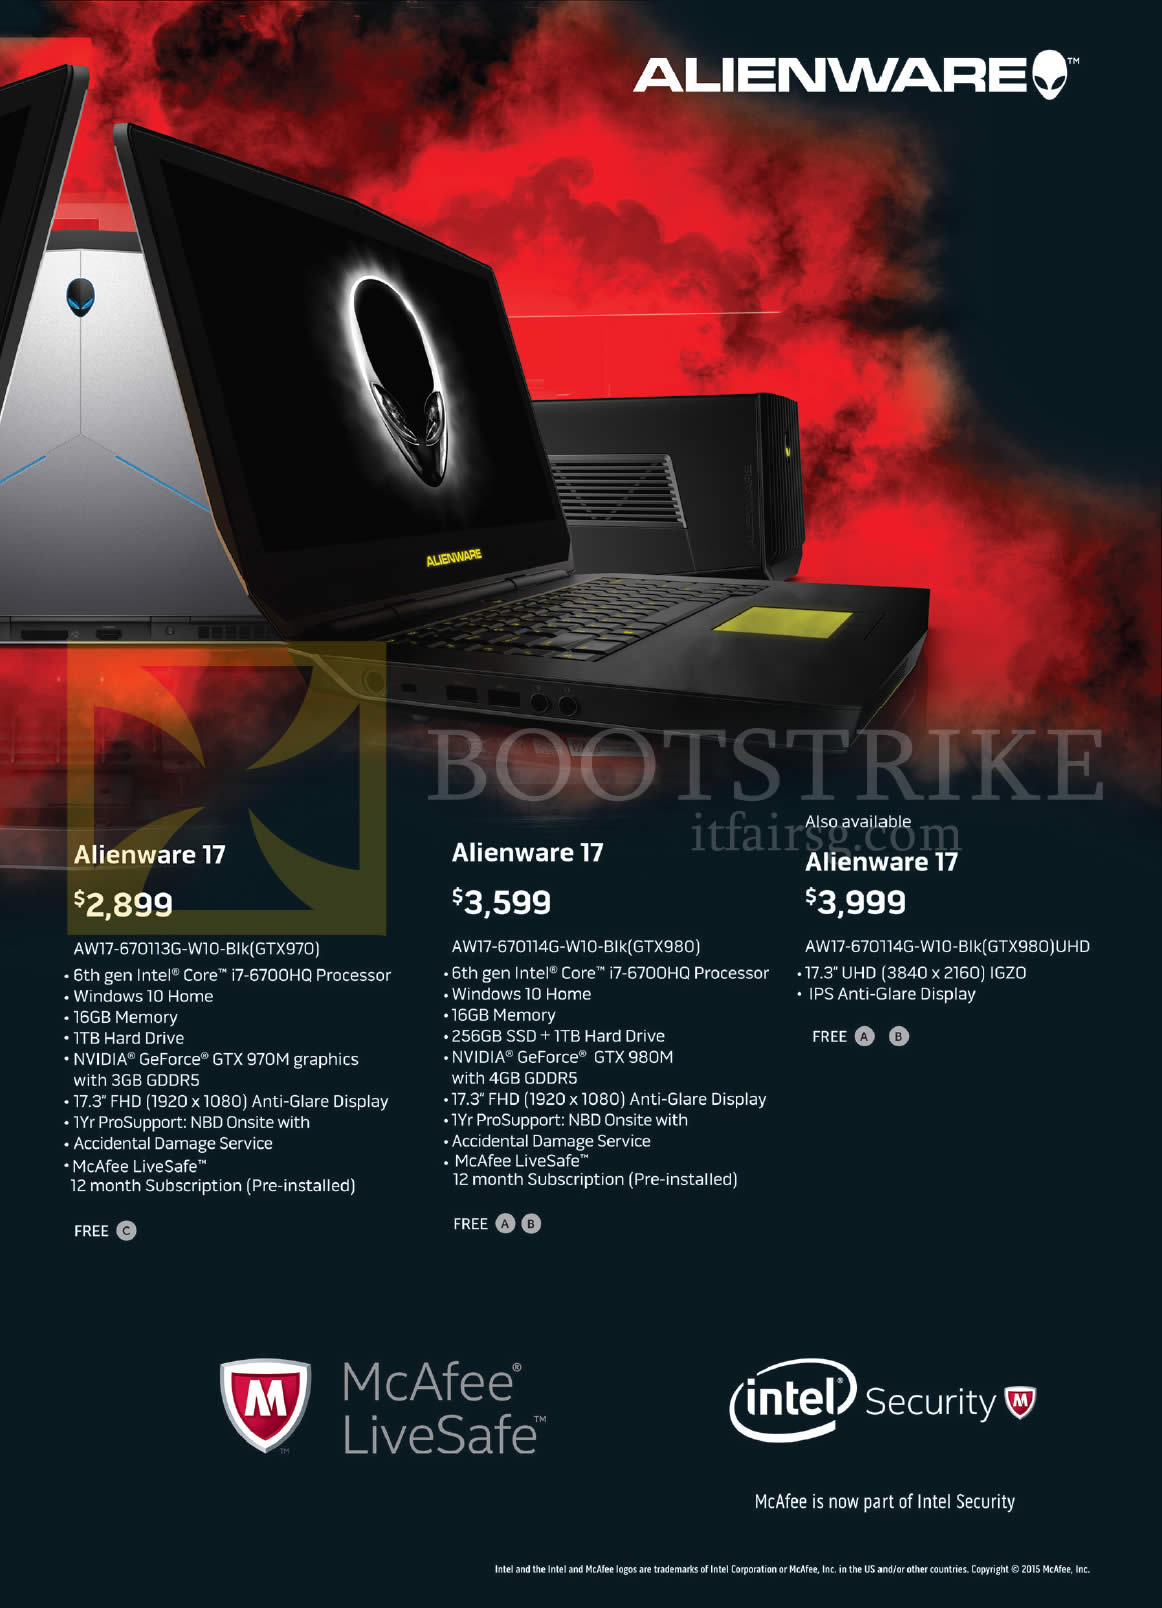 PC SHOW 2016 price list image brochure of Dell Notebooks Alienware 17 AW17-670113G-W10-Blk, 670114G-W10-Blk, 670114G-W10-Blk